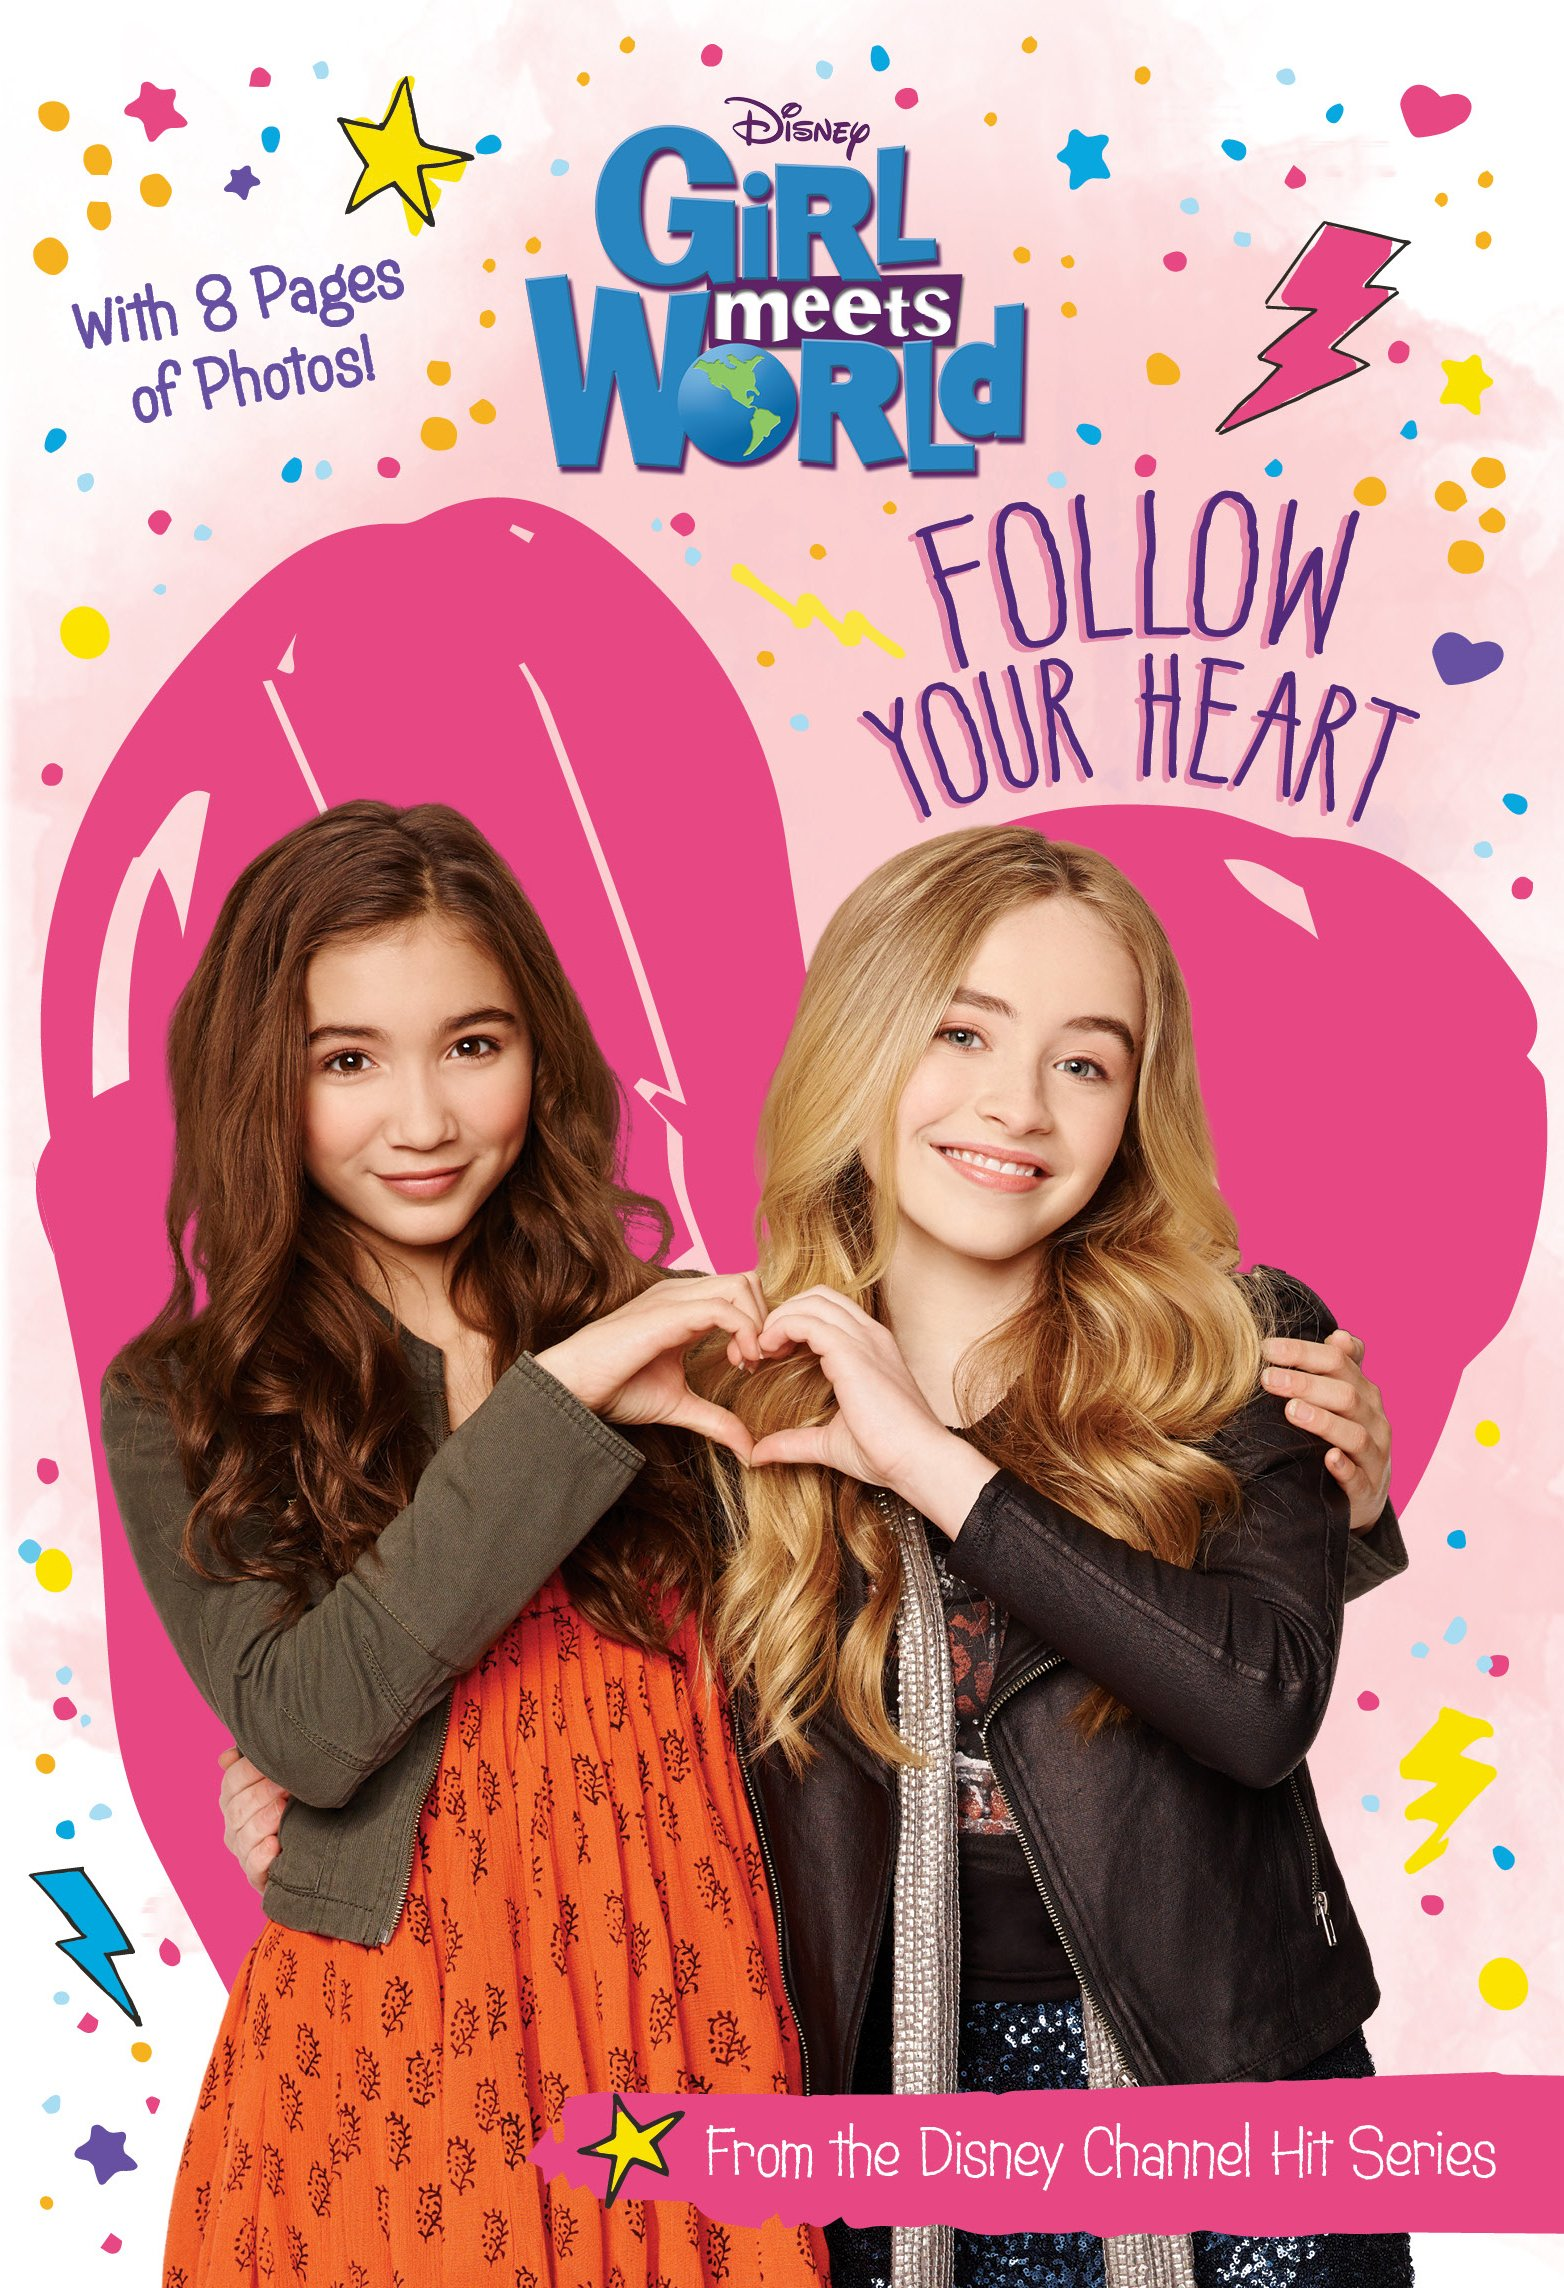 meet world girl Read story girl meets world theme song take on the world lyrics by disneygirlmeetsworld with 77,783 reads themesong, girlmeetsworld, disney take on the wo.